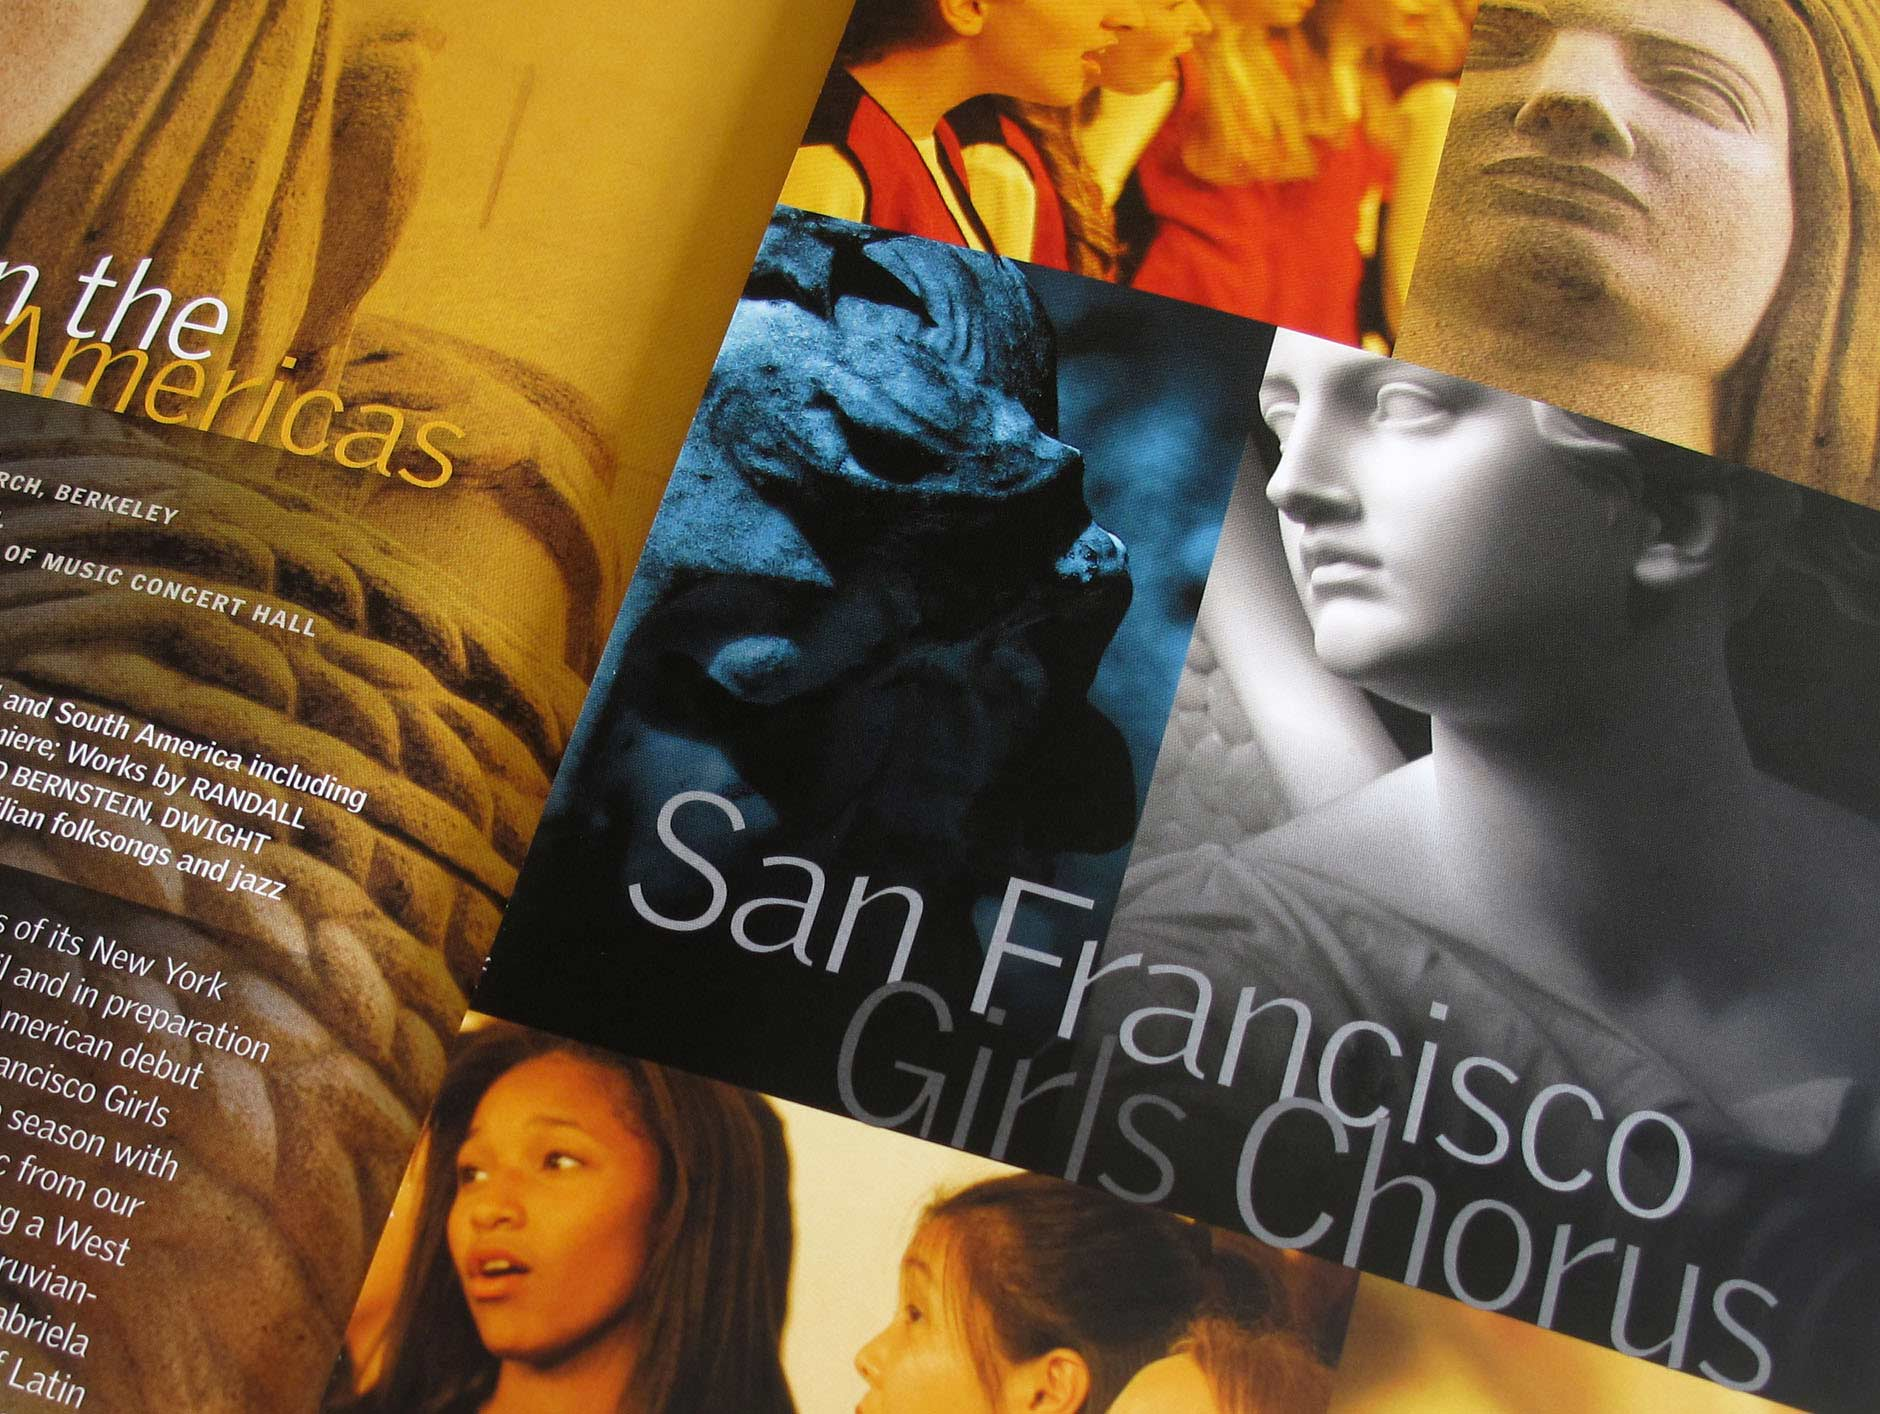 San Francisco Girls Chorus: Season Collateral